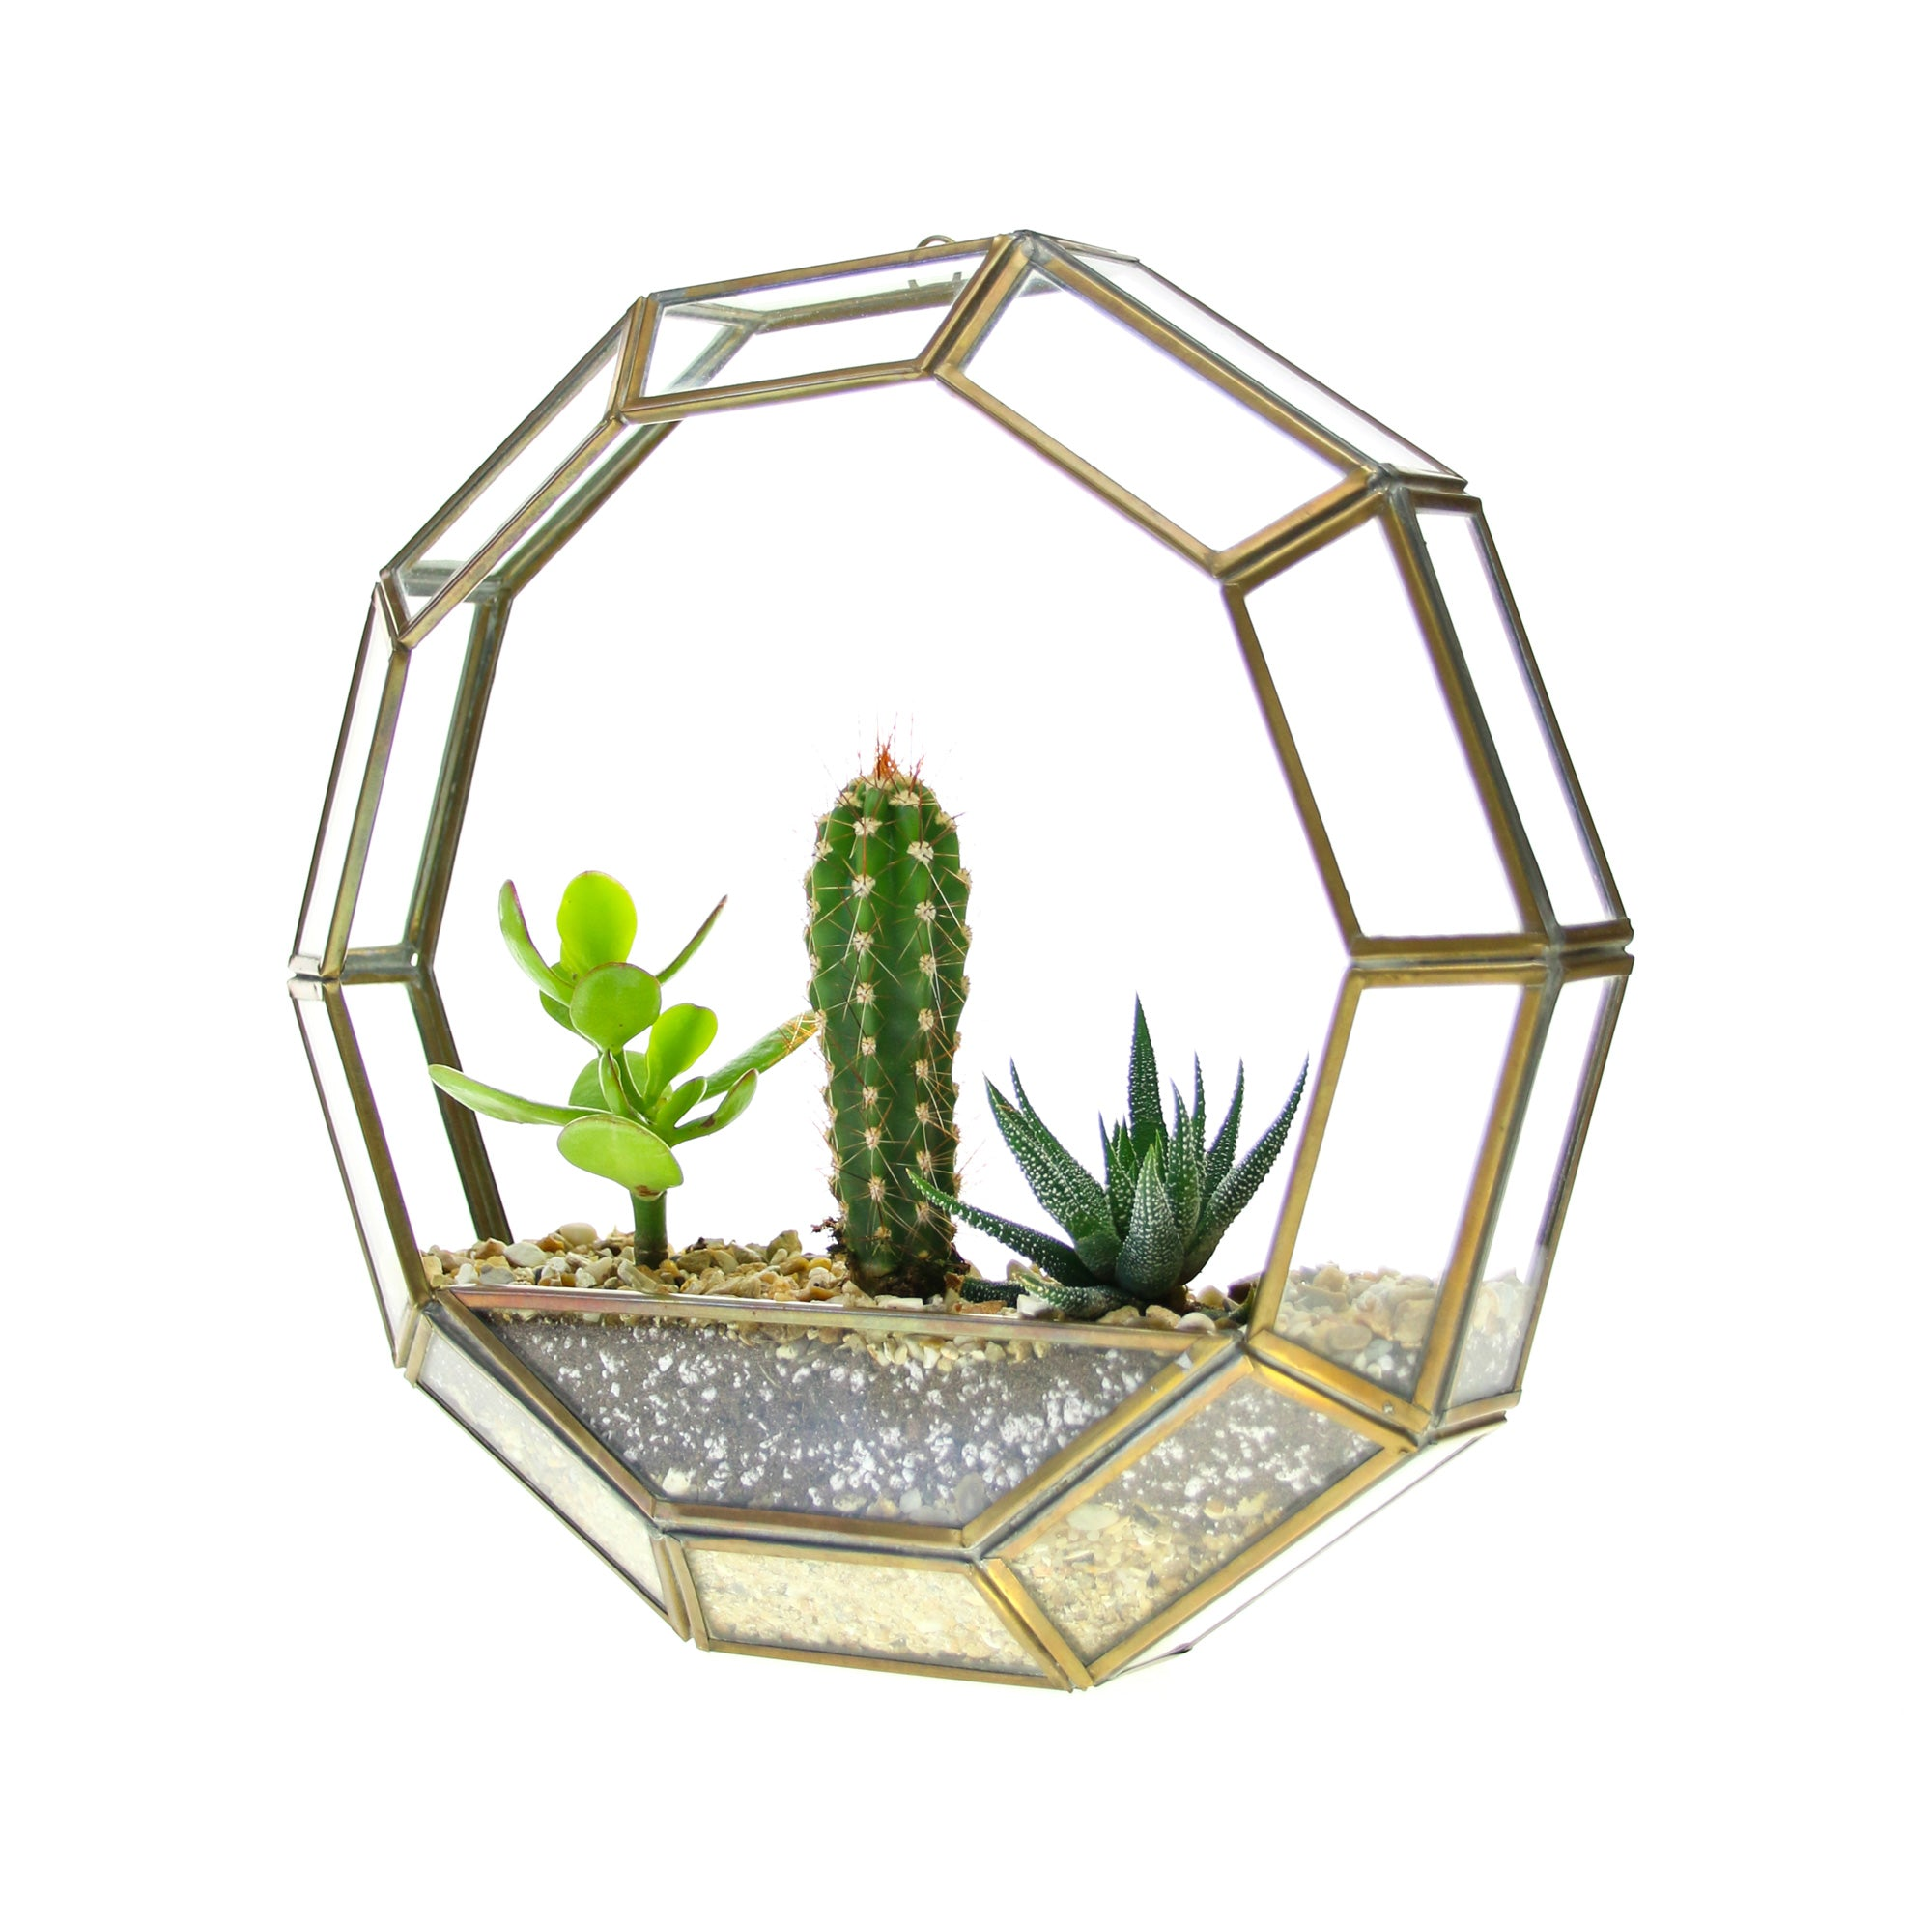 Circular Brass Wall Hanging Terrarium With Succulent And Cactus Trio The Art Of Succulents